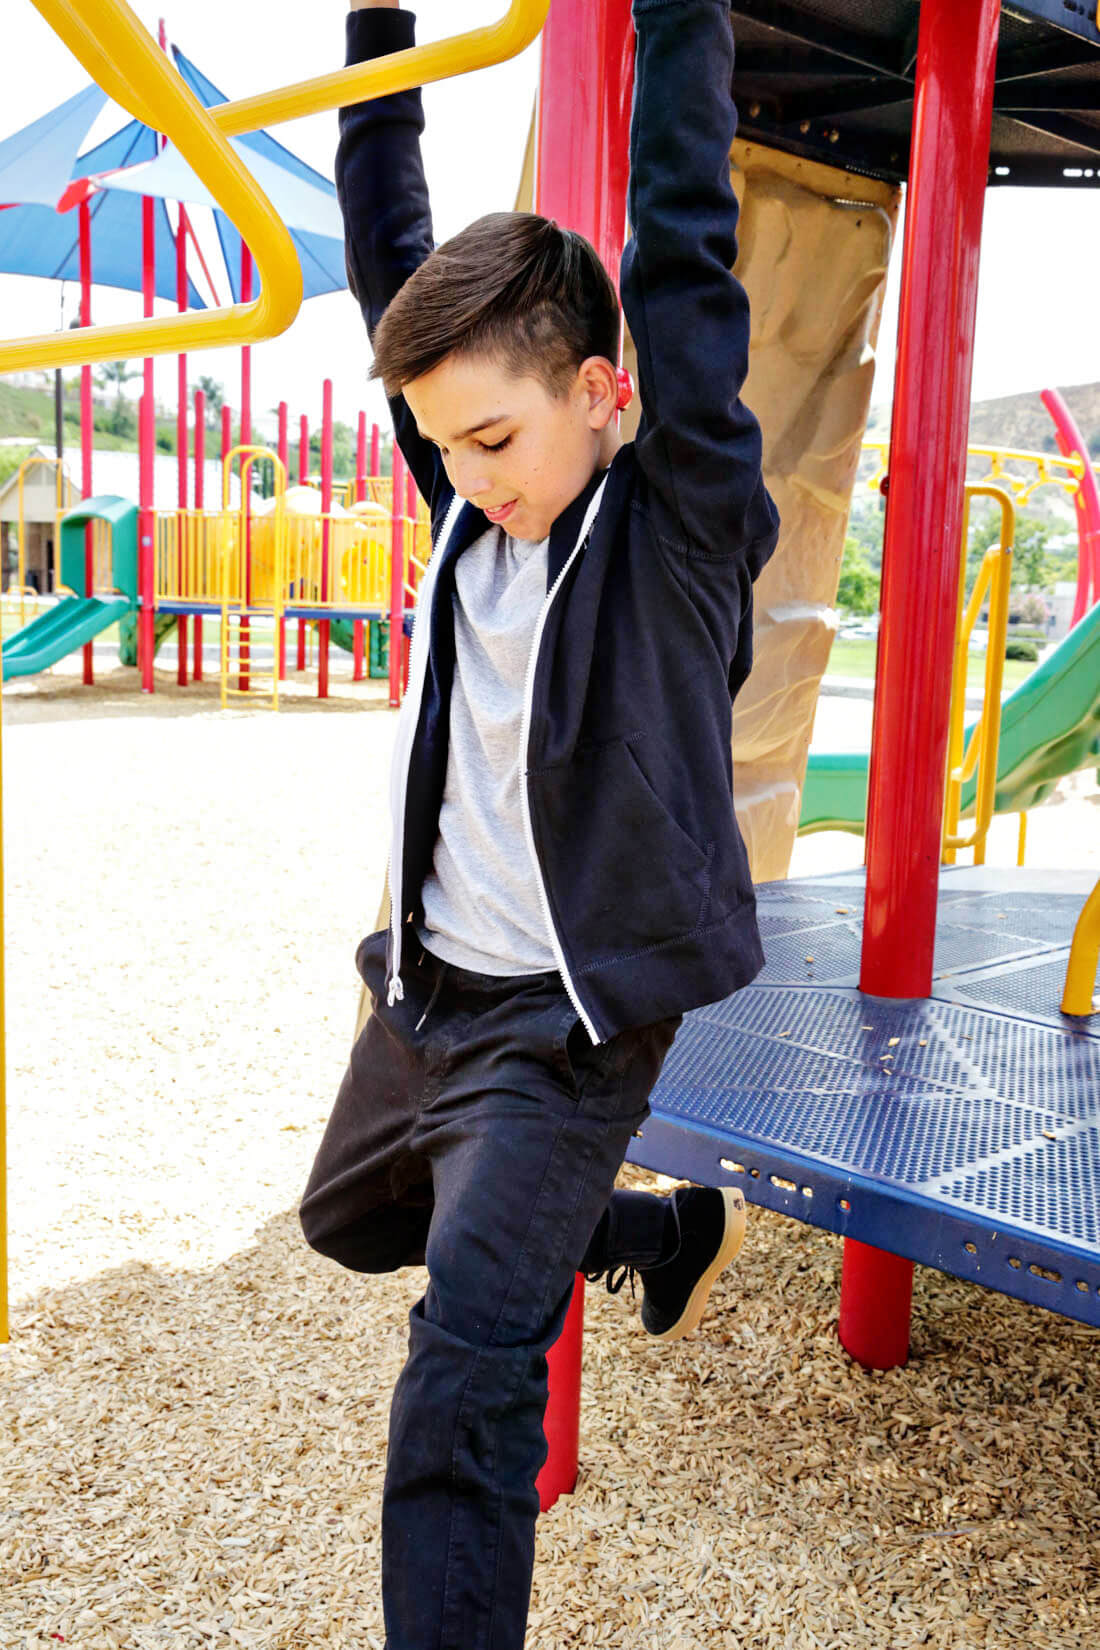 How to make a capsule wardrobe for kids - perfect for back to school! Playing on the playground with Abercrombie Kids